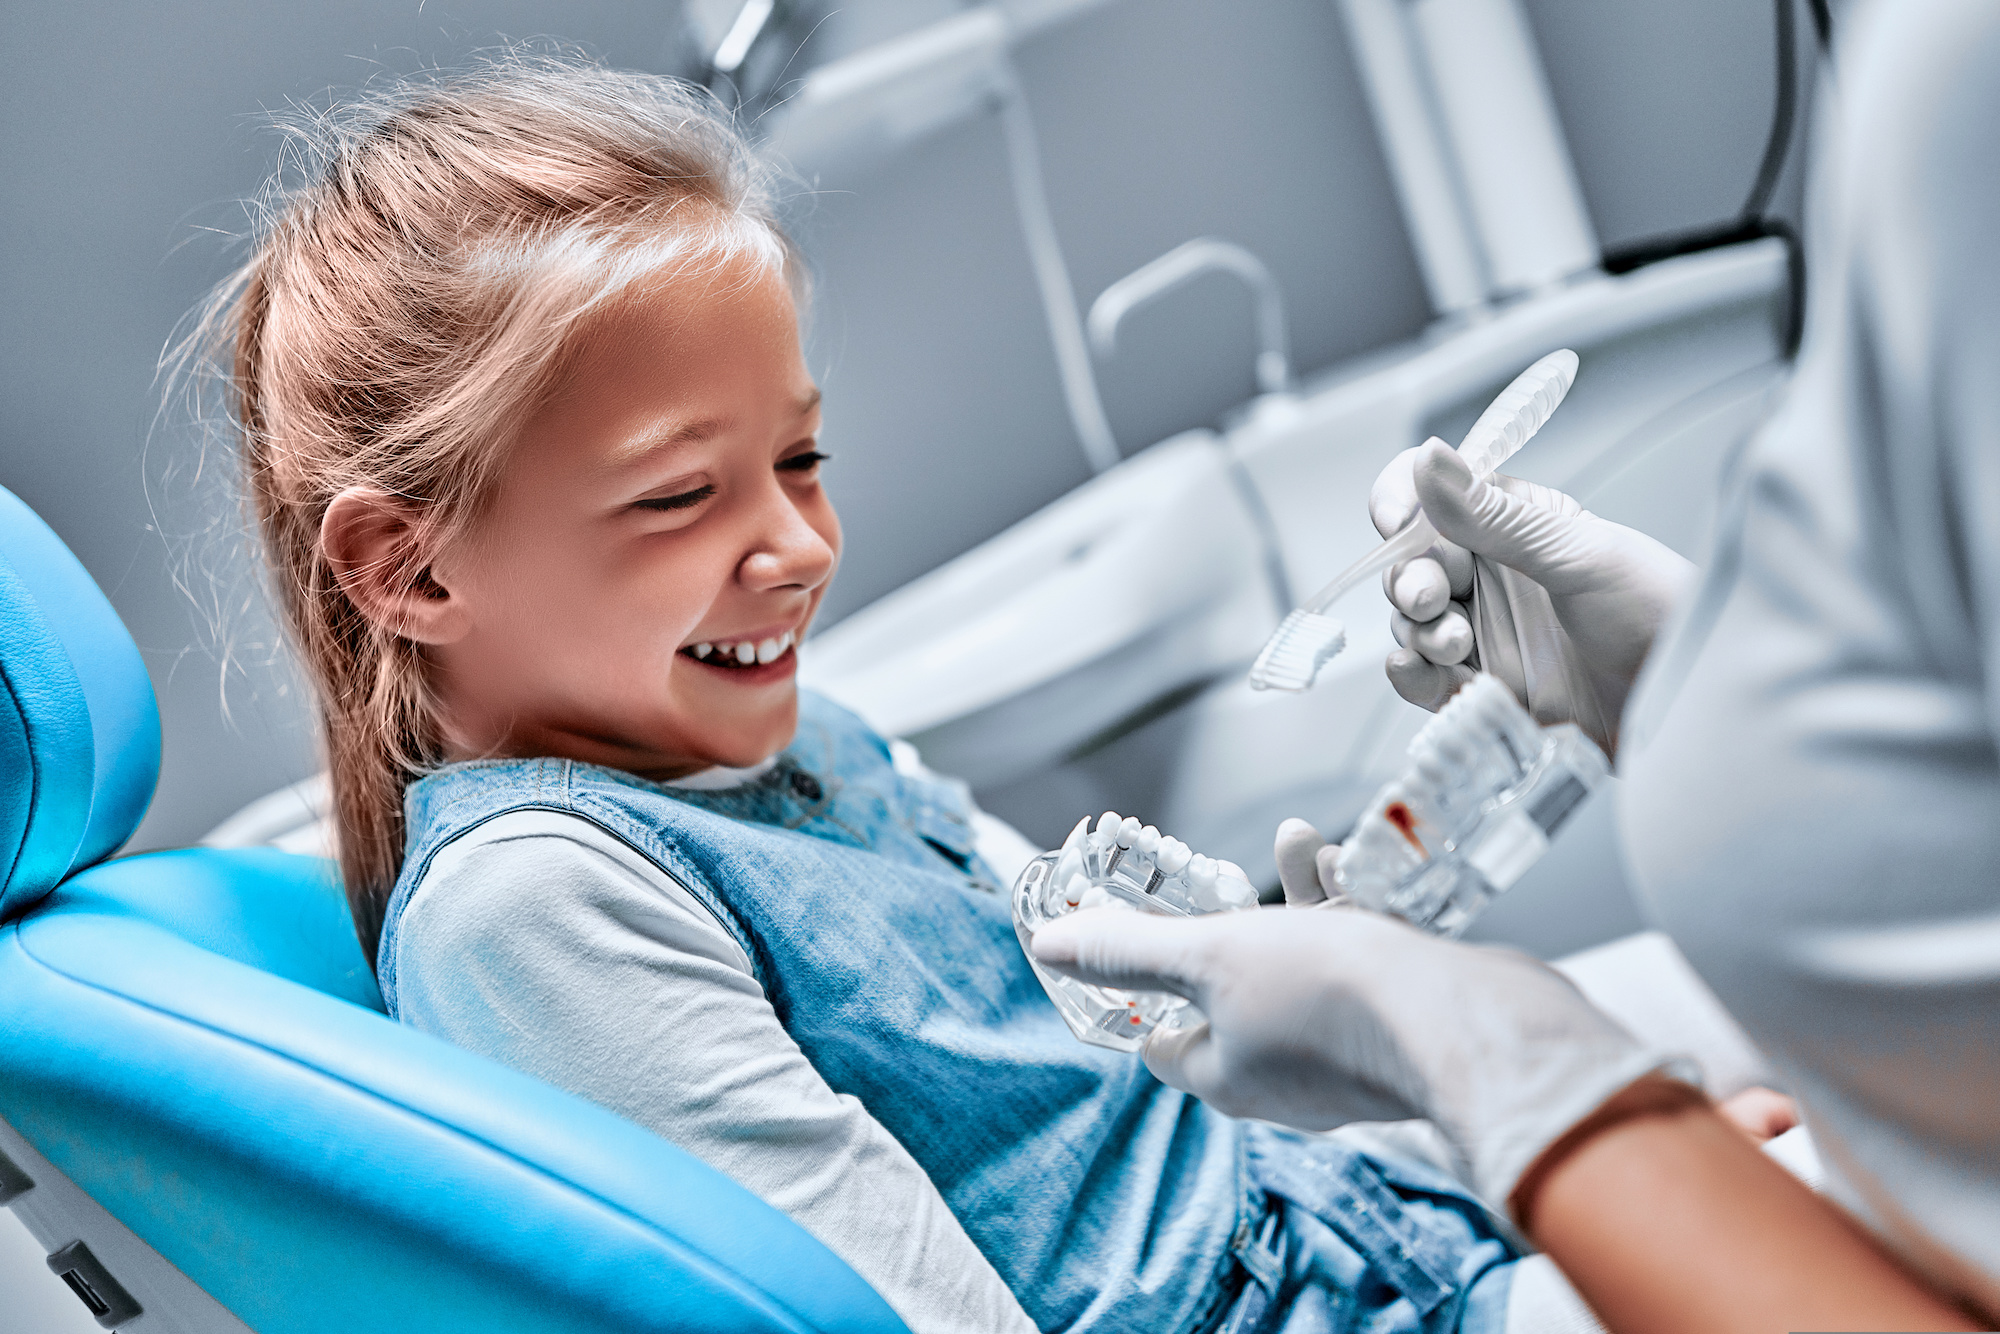 What Is The Difference Between A Dentist And A Pediatric Dentist?